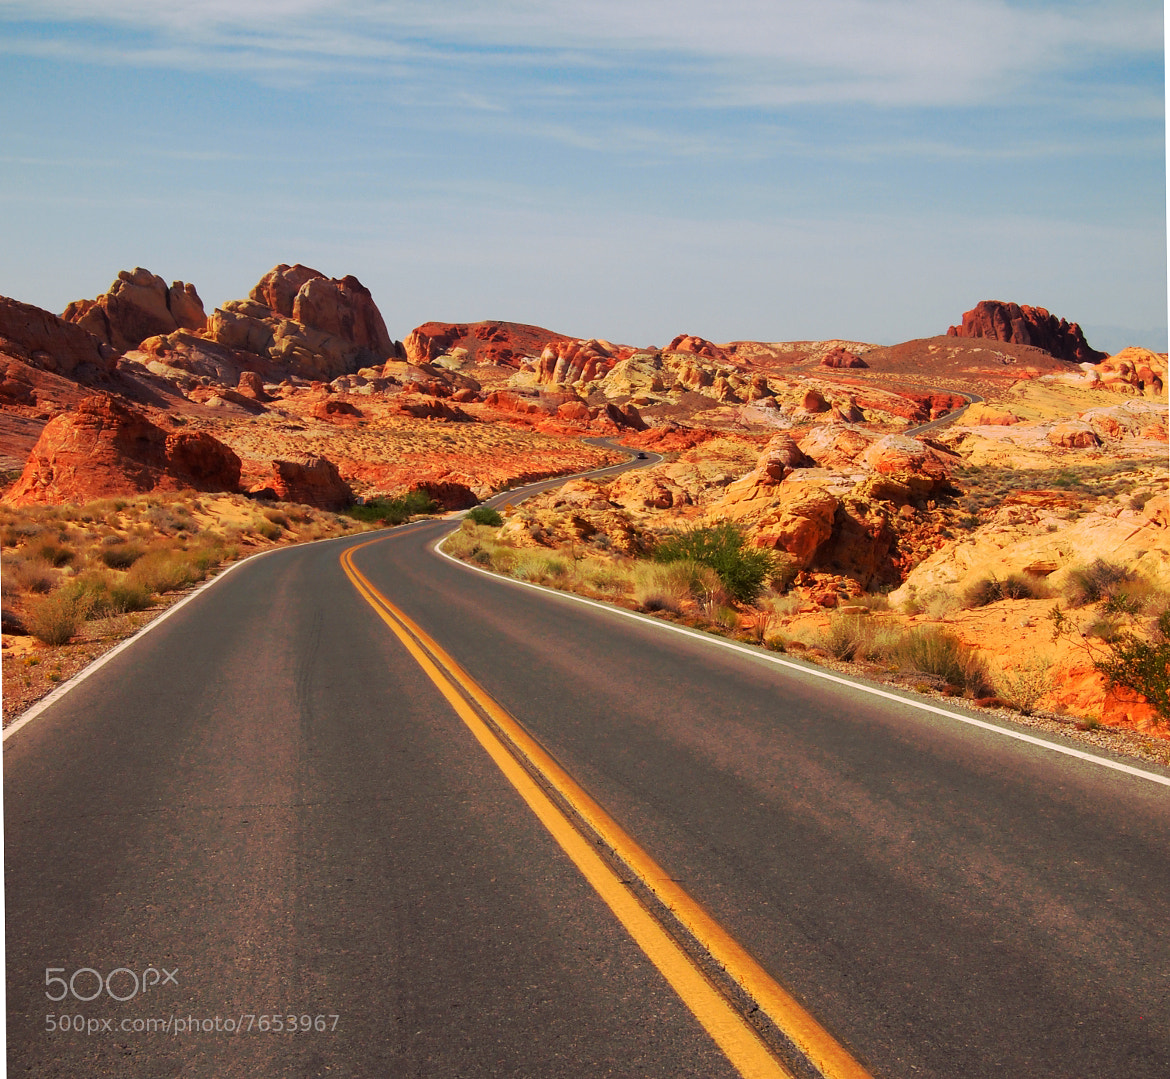 Photograph The Road by Eivind N on 500px